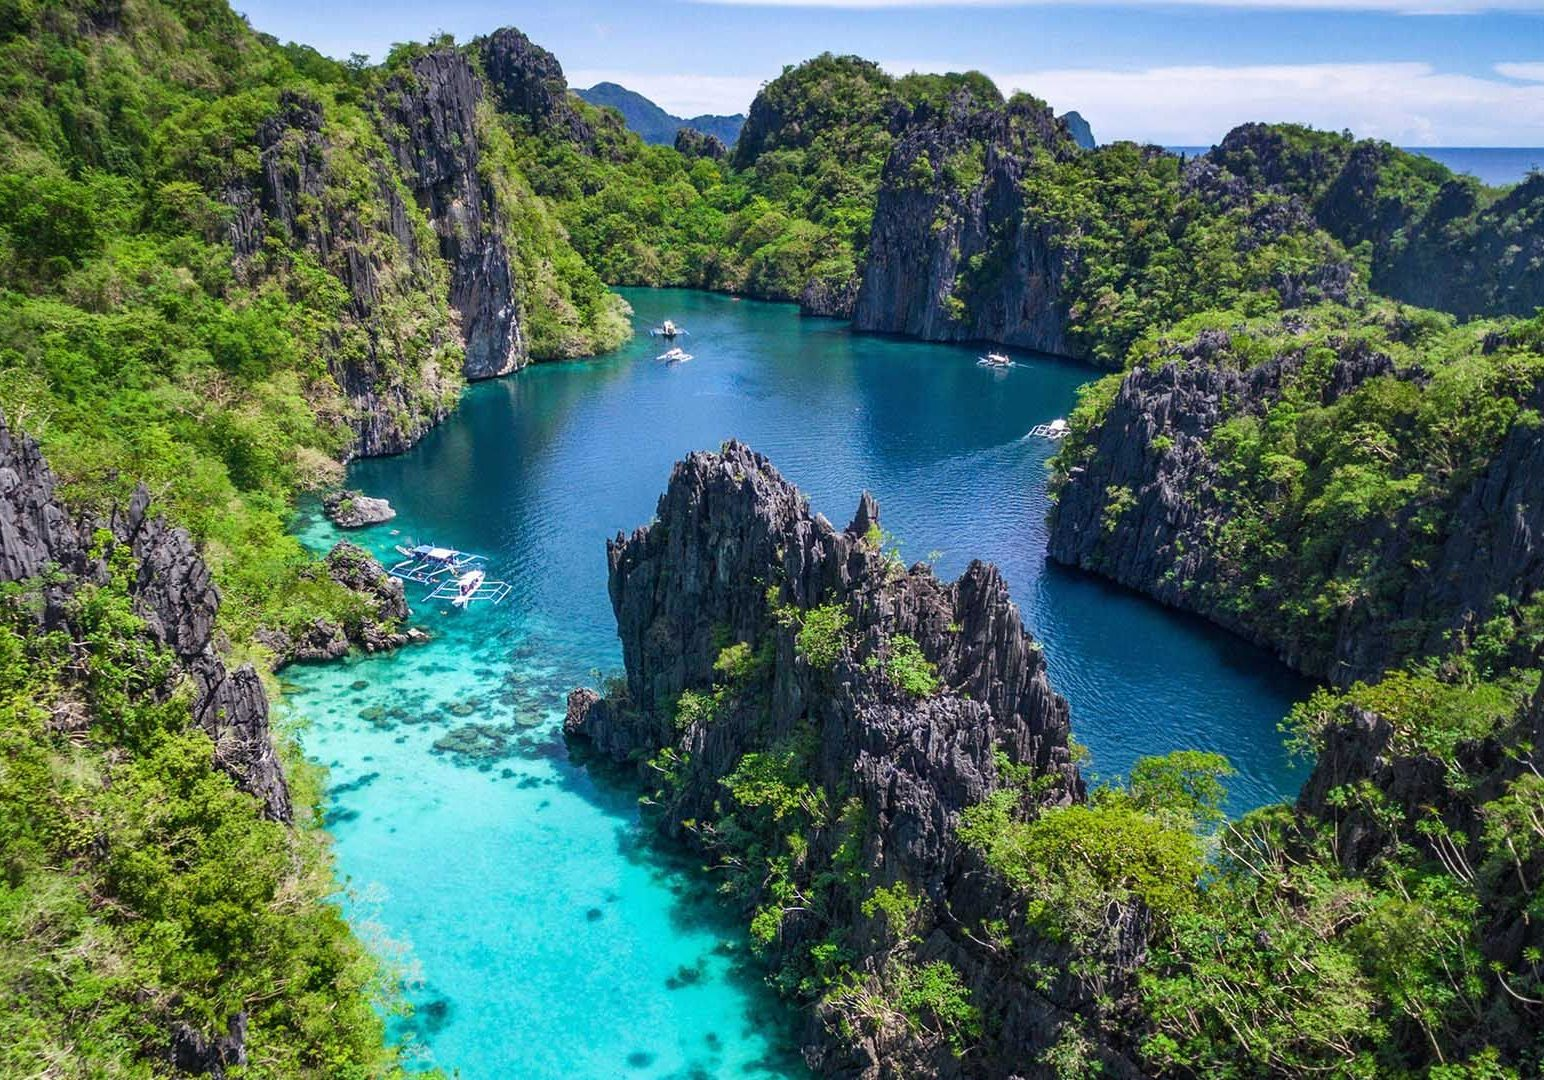 travel-to-philippines-rough-guides_e10eec8d56